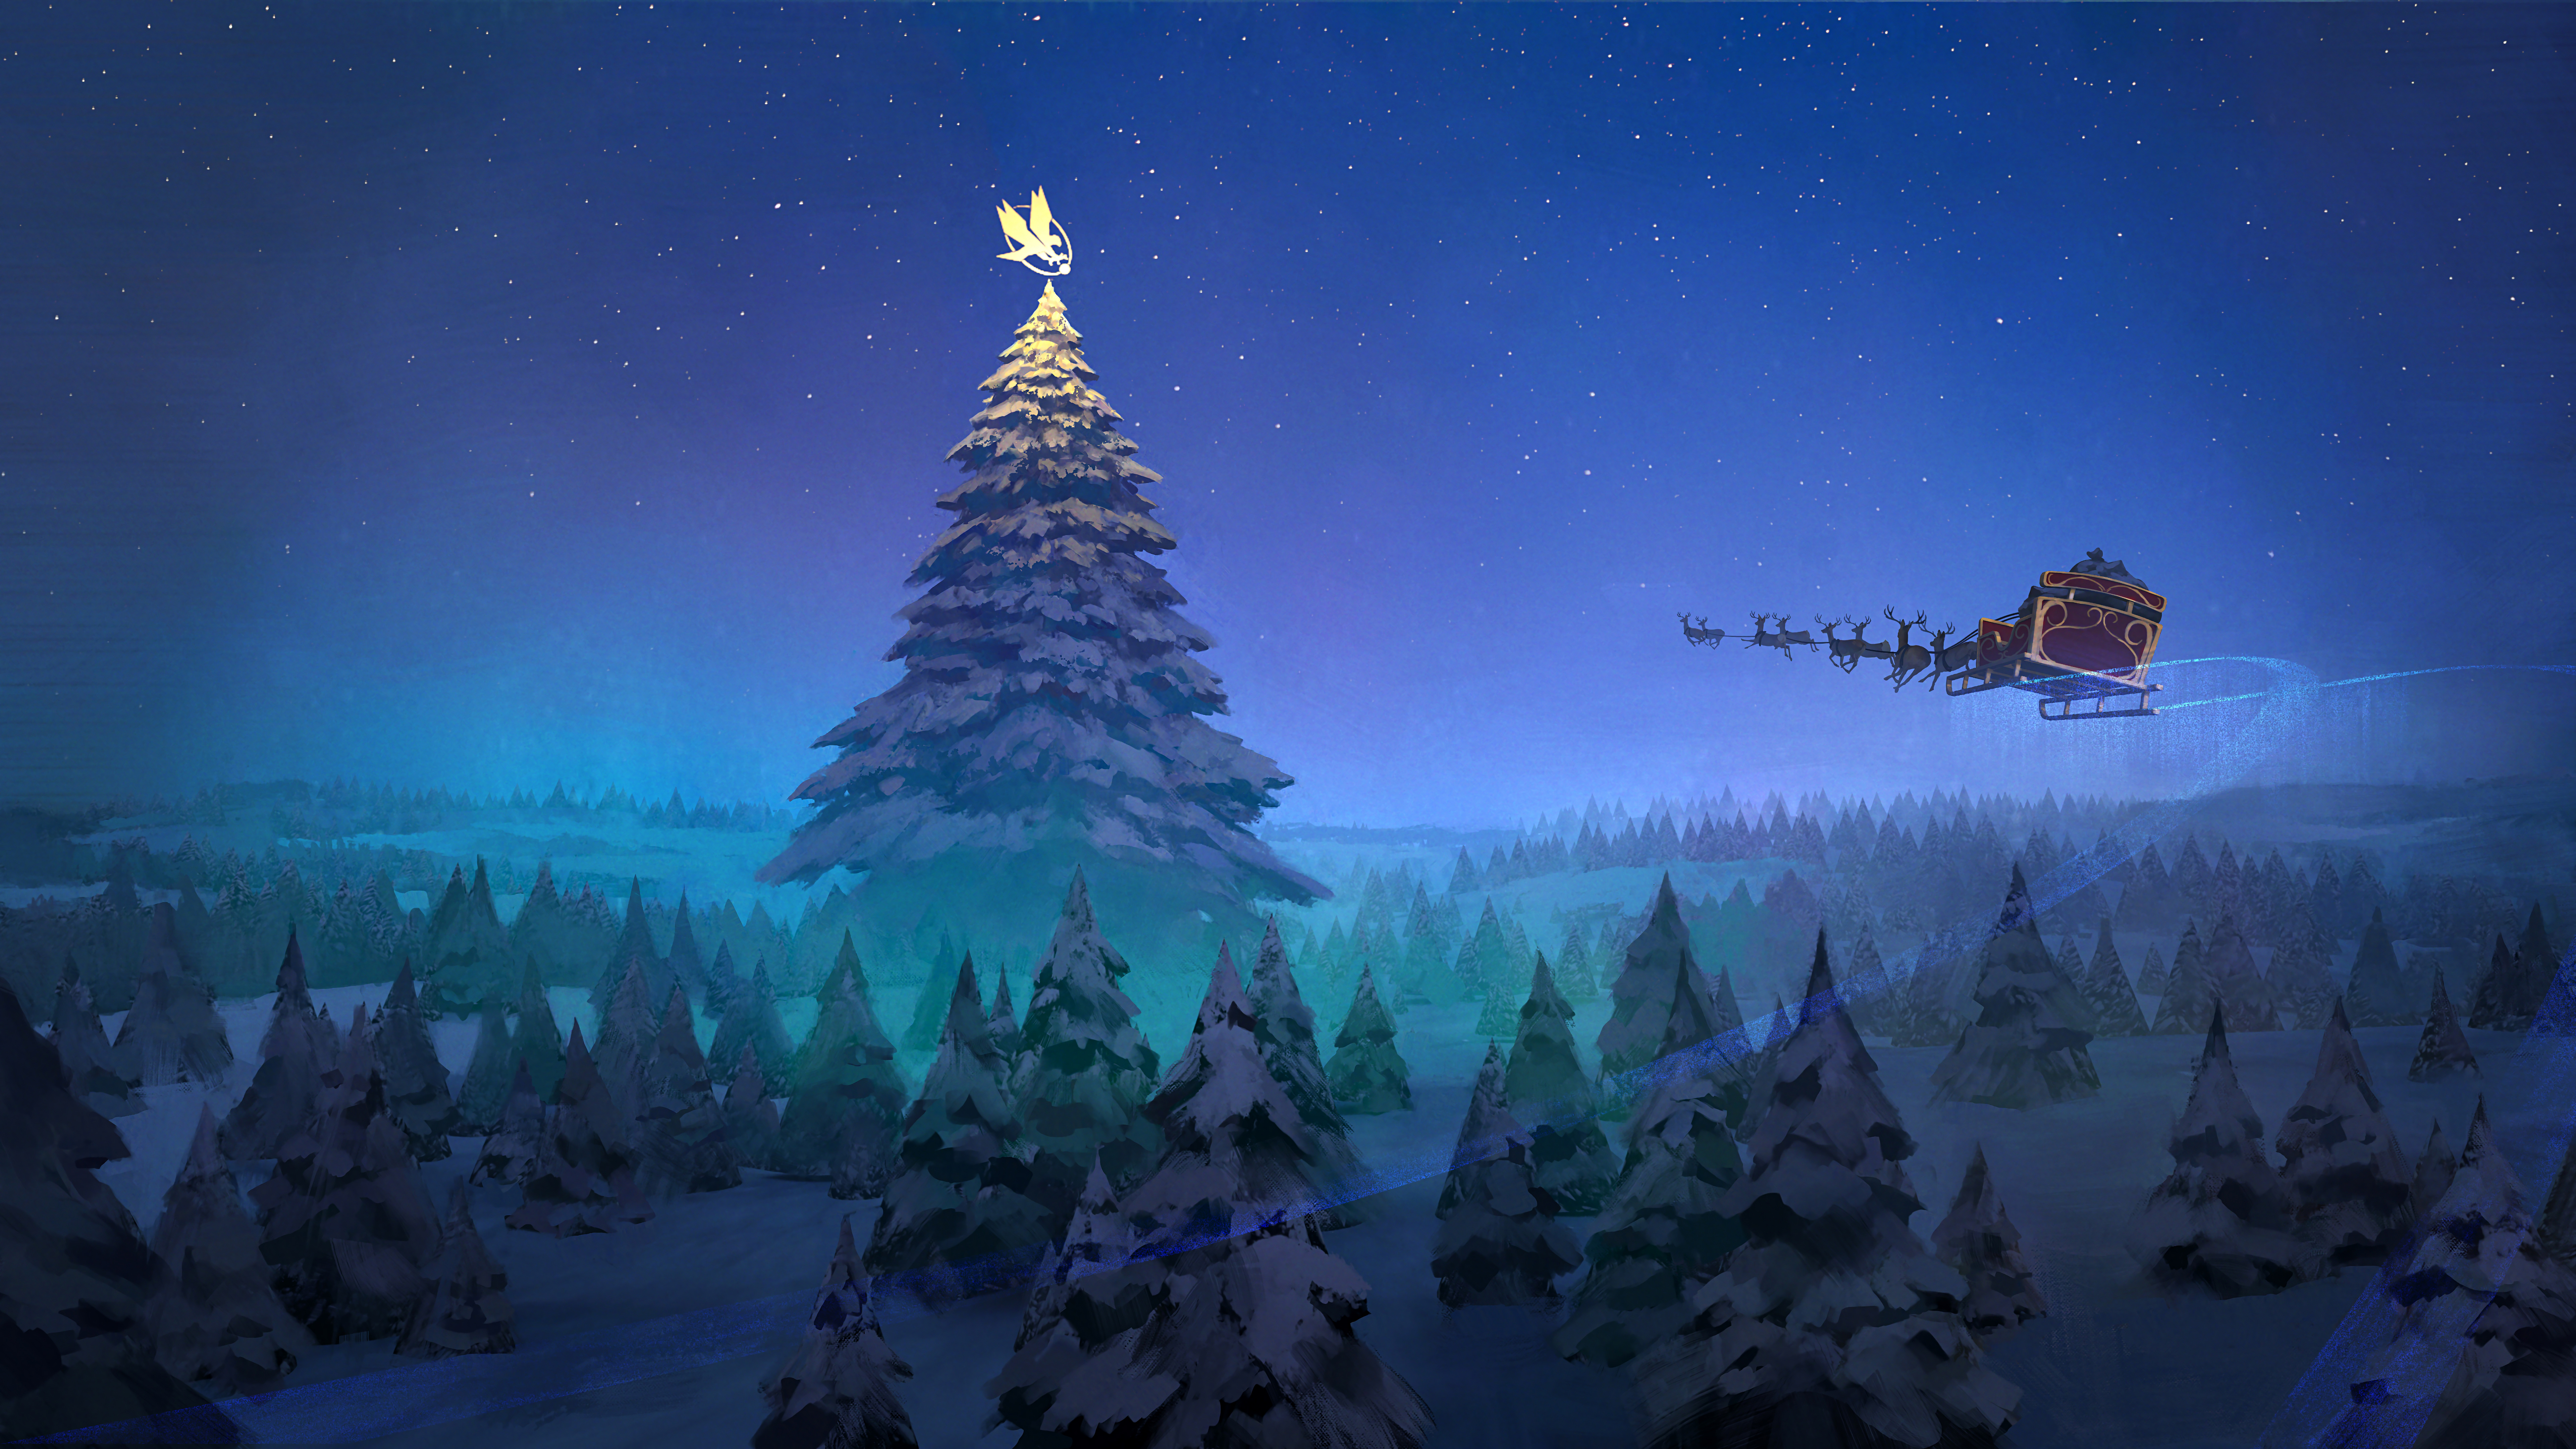 Wallpaper Christmas tree with Santa Claus sleigh flying